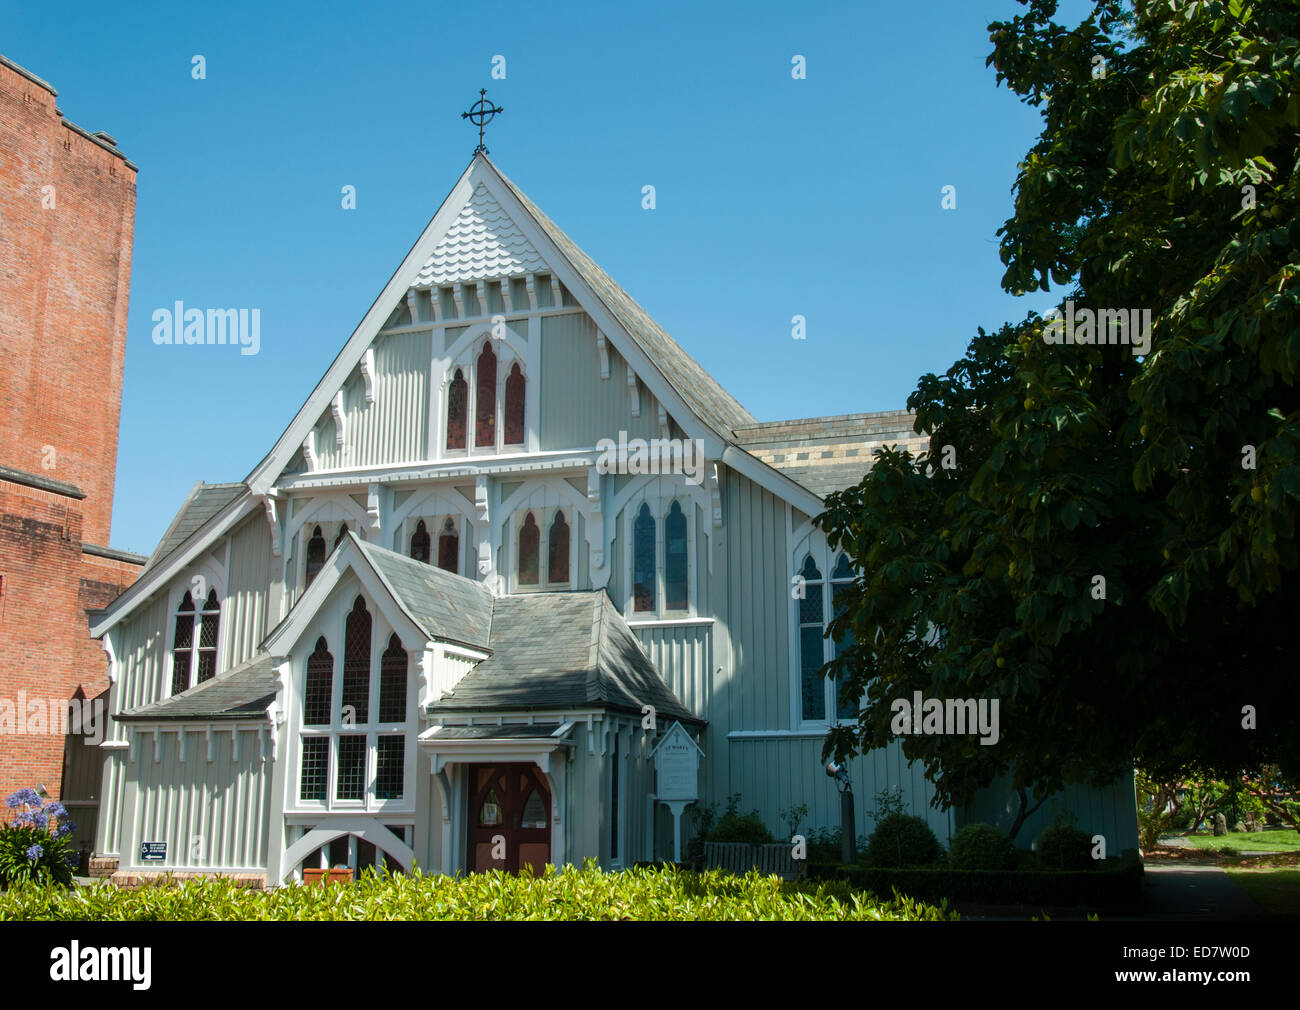 Churches In New Zealand Stock Photos & Churches In New